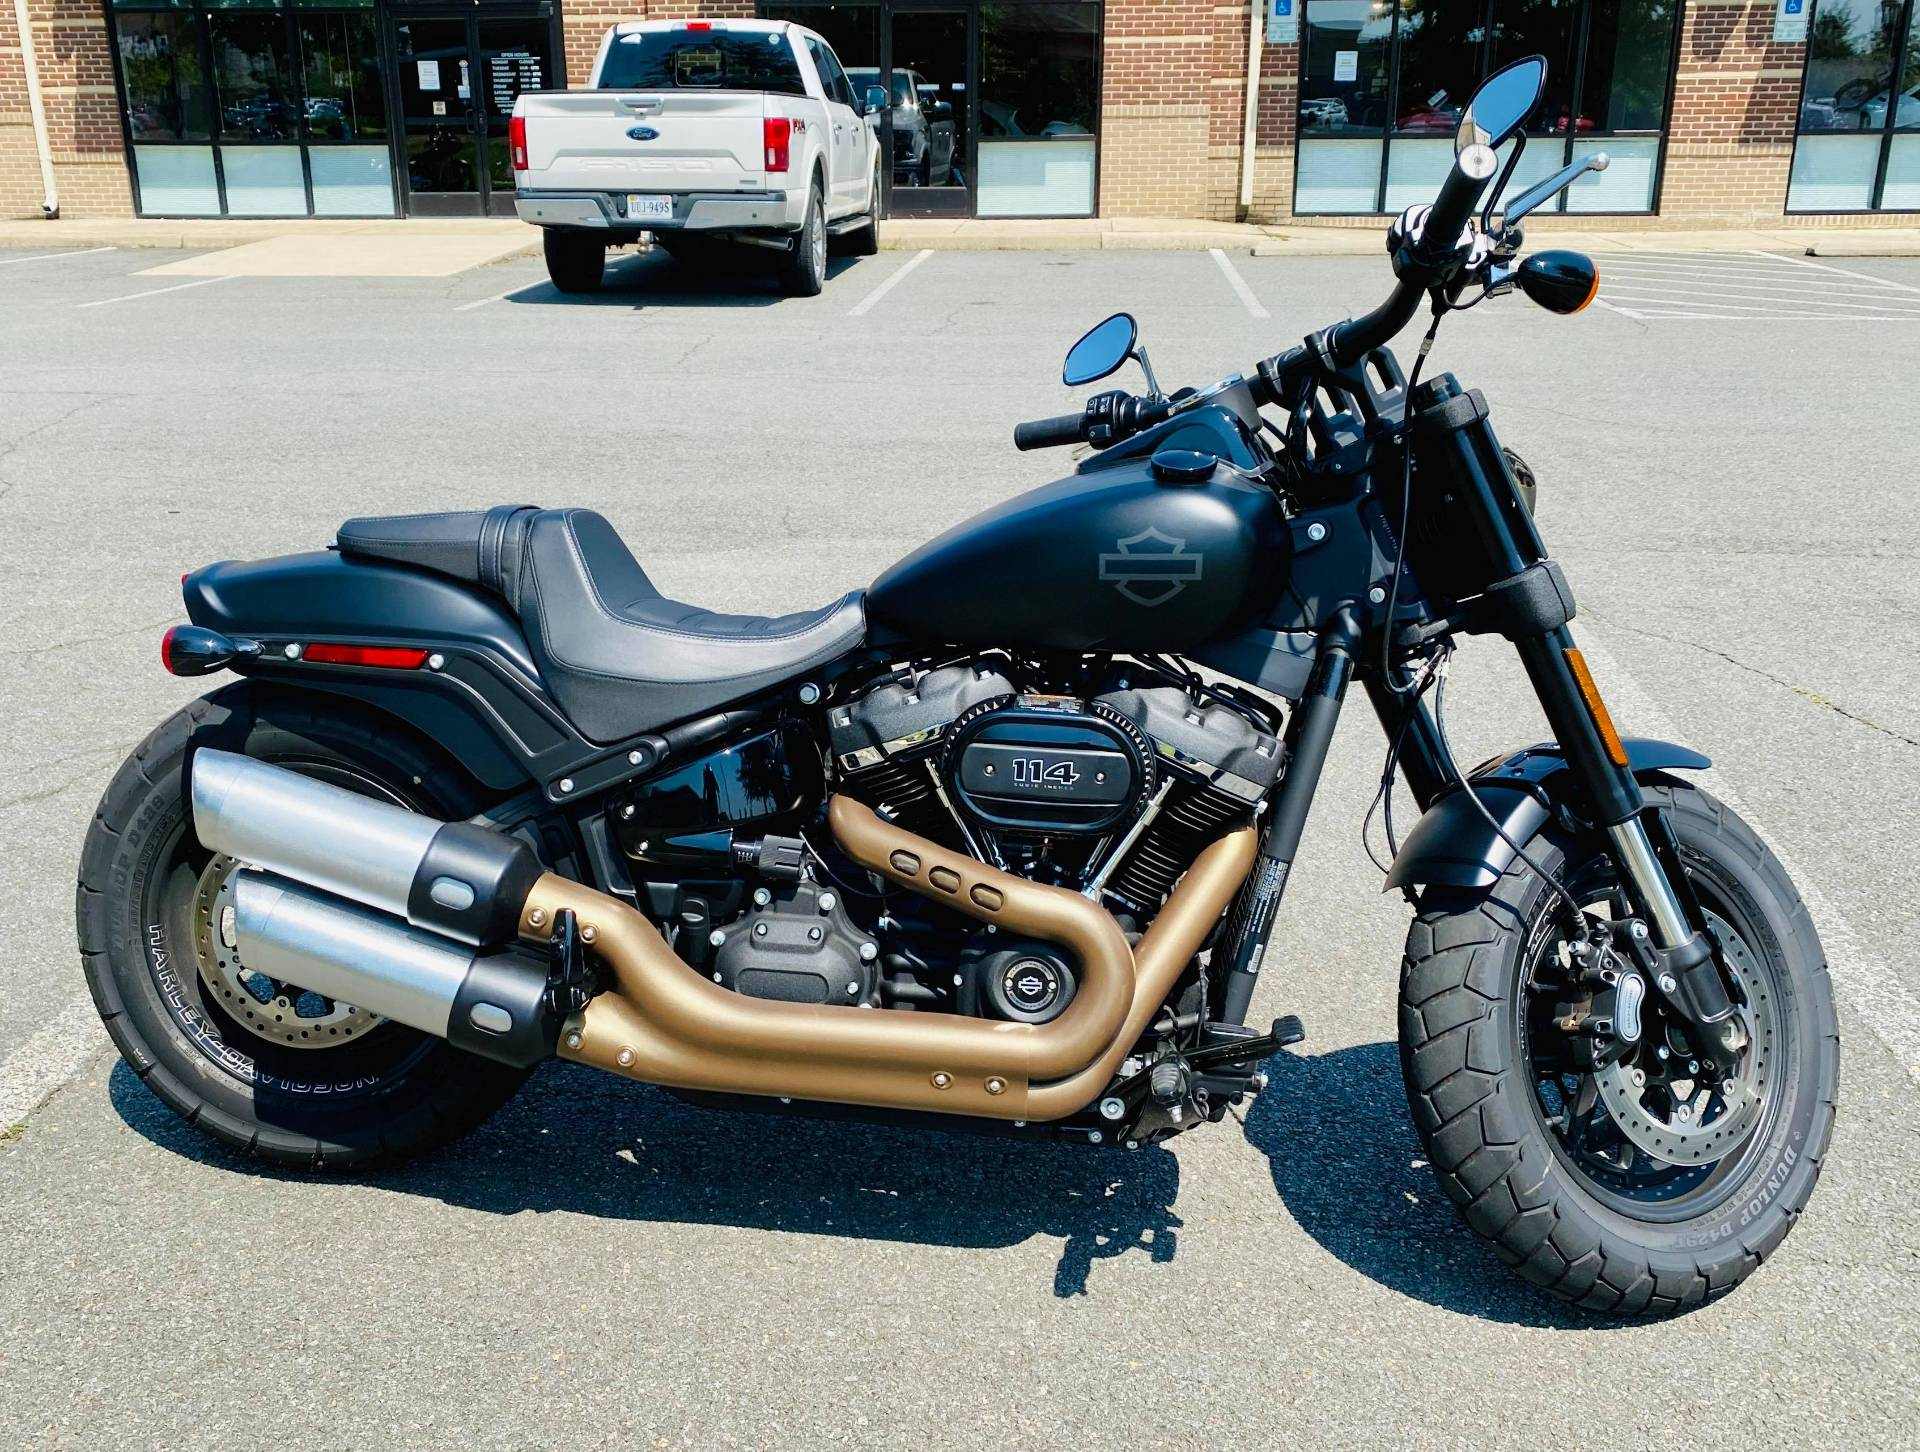 2019 HARLEY DAVIDSON FXFBS Fat Bob 114 in Fredericksburg, Virginia - Photo 13